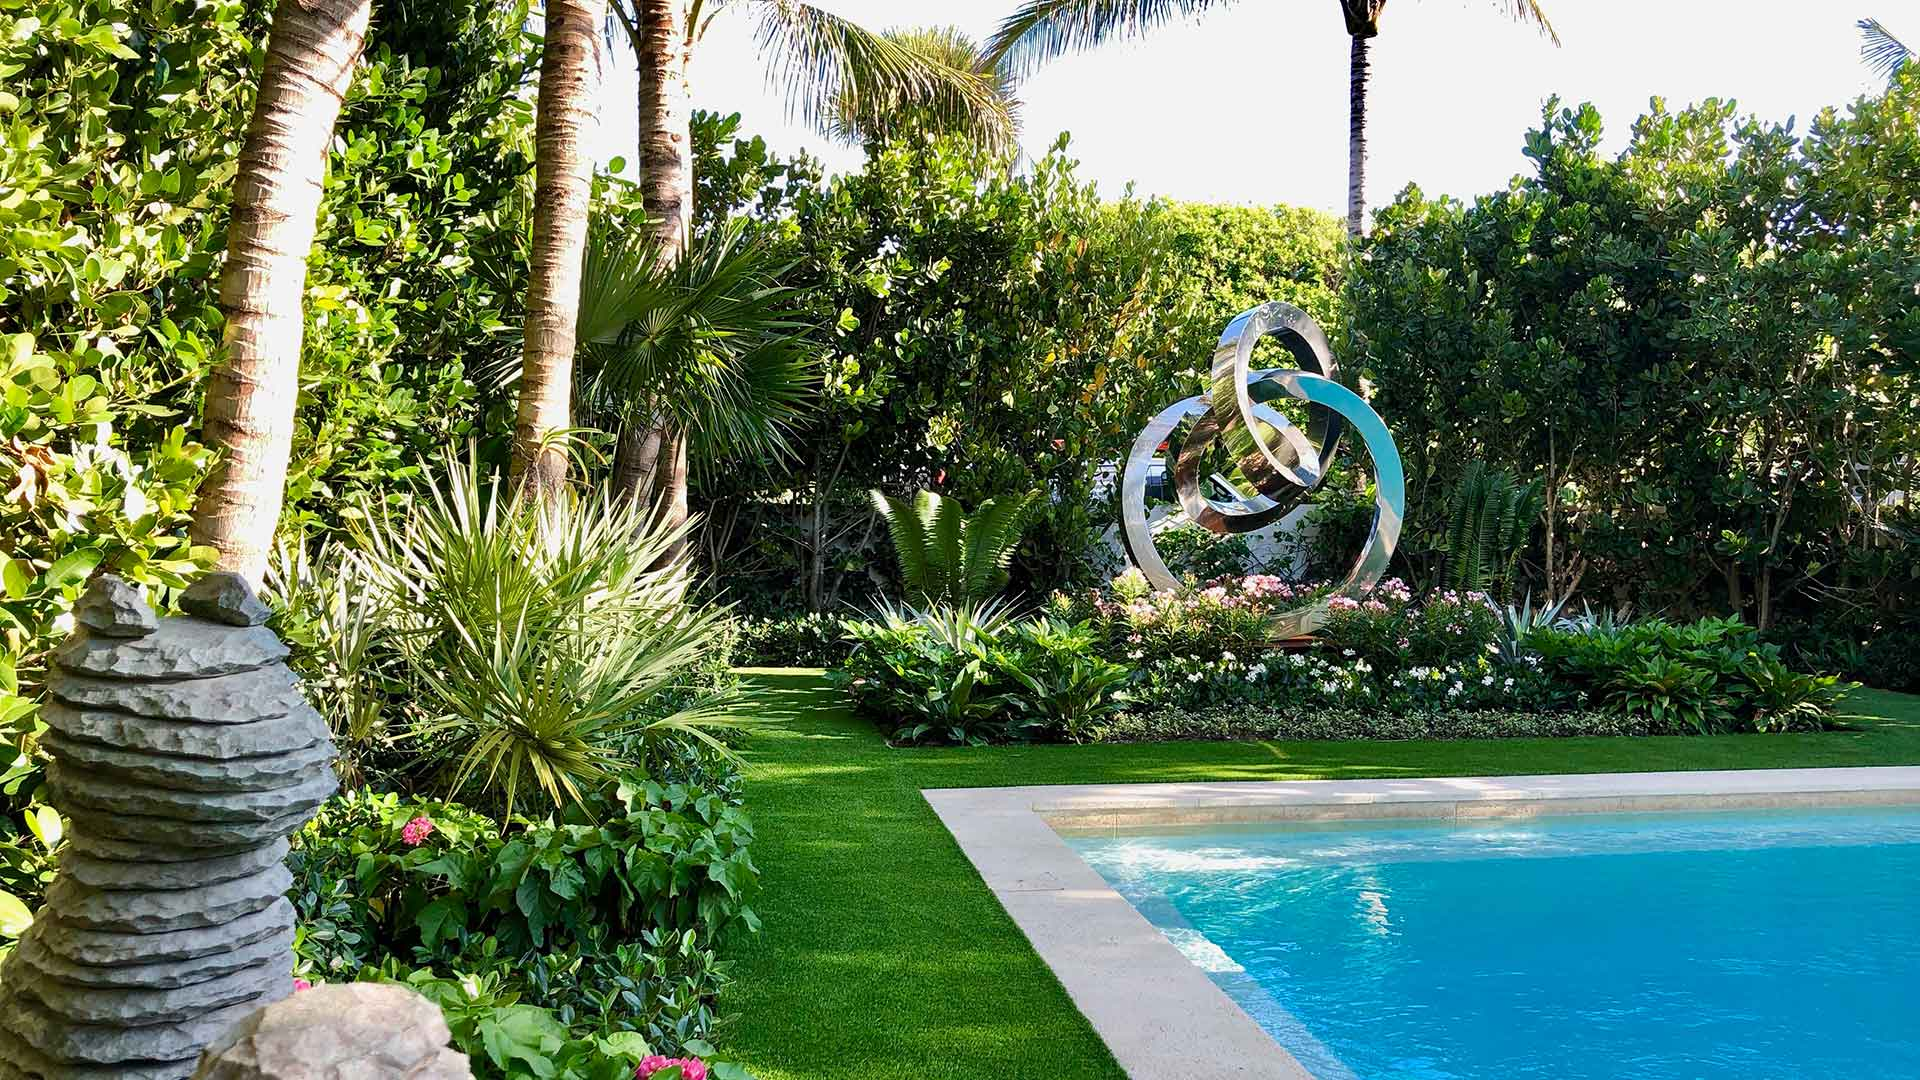 Artificial Turf & Landscaping Installed at Palm Beach Oceanfront Home